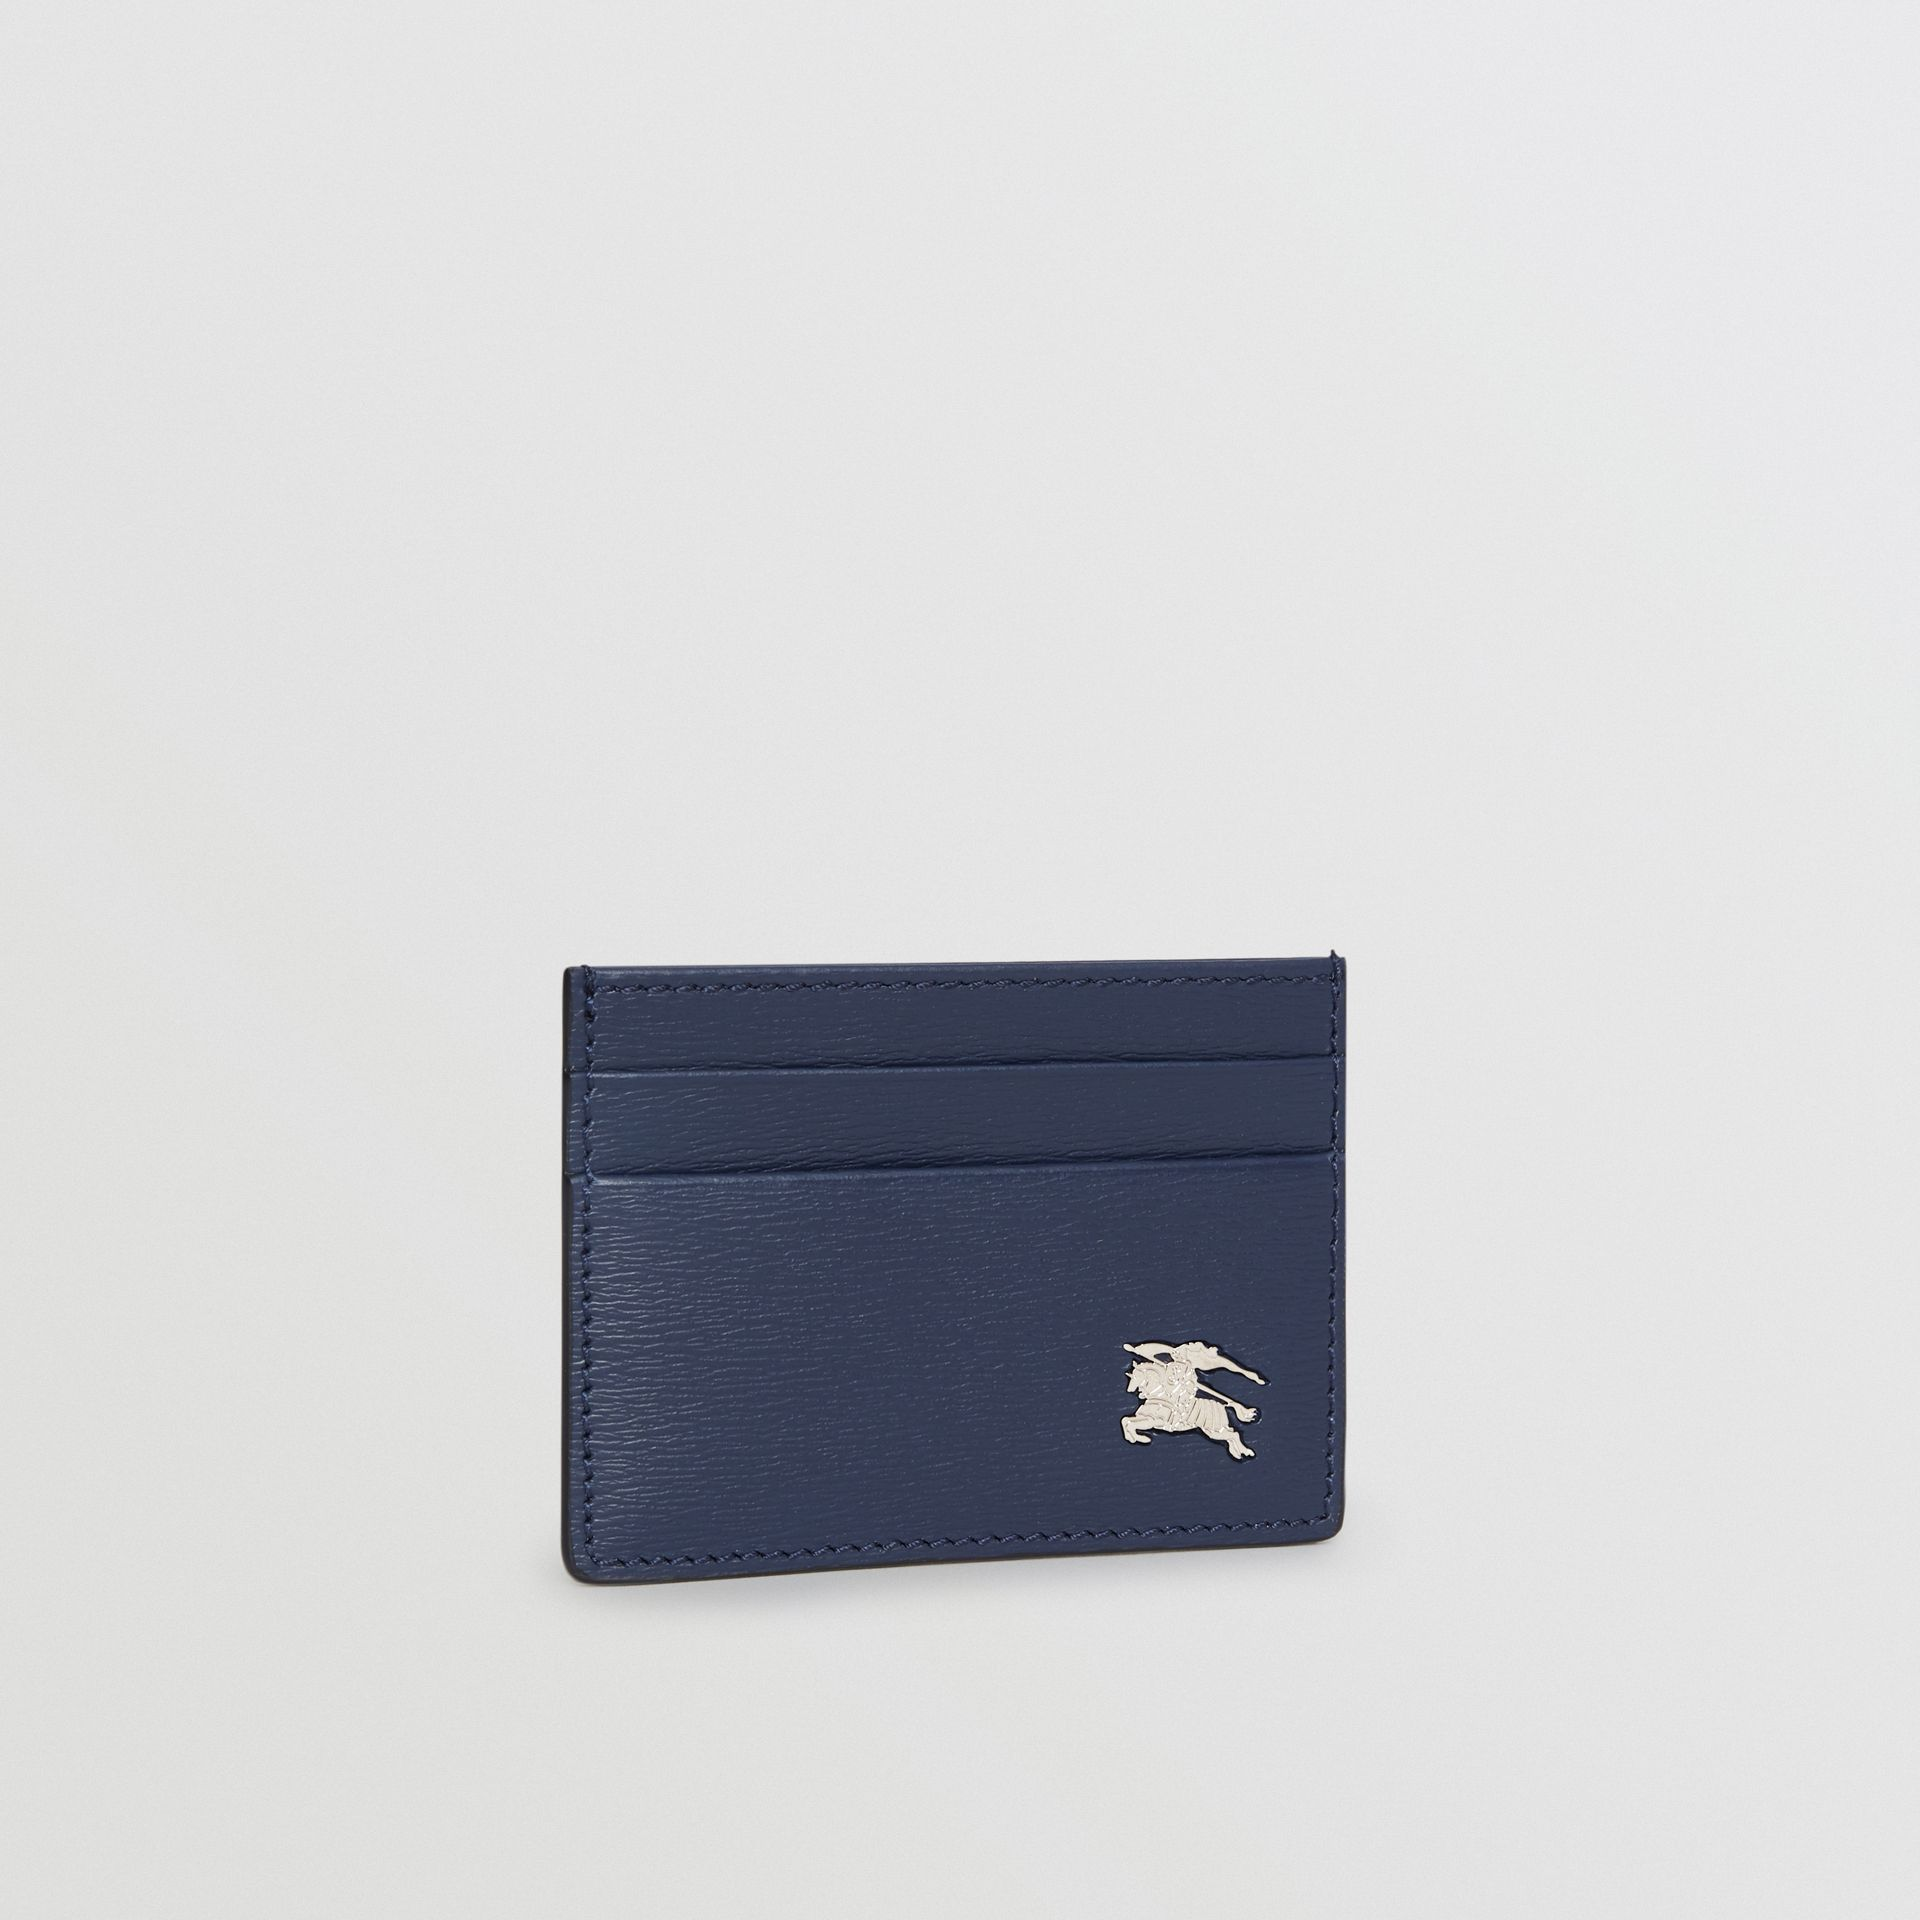 London Leather Card Case in Navy - Men | Burberry - gallery image 3